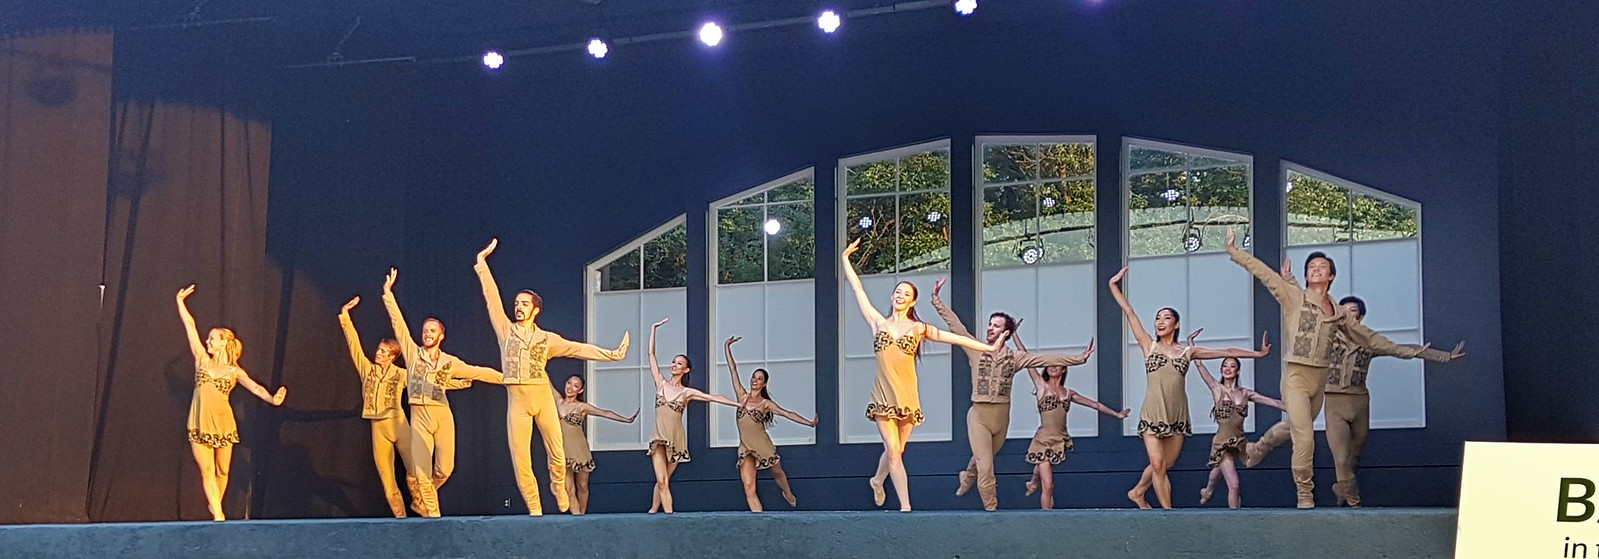 RWB Ballet in the Park 2017 Celts 14